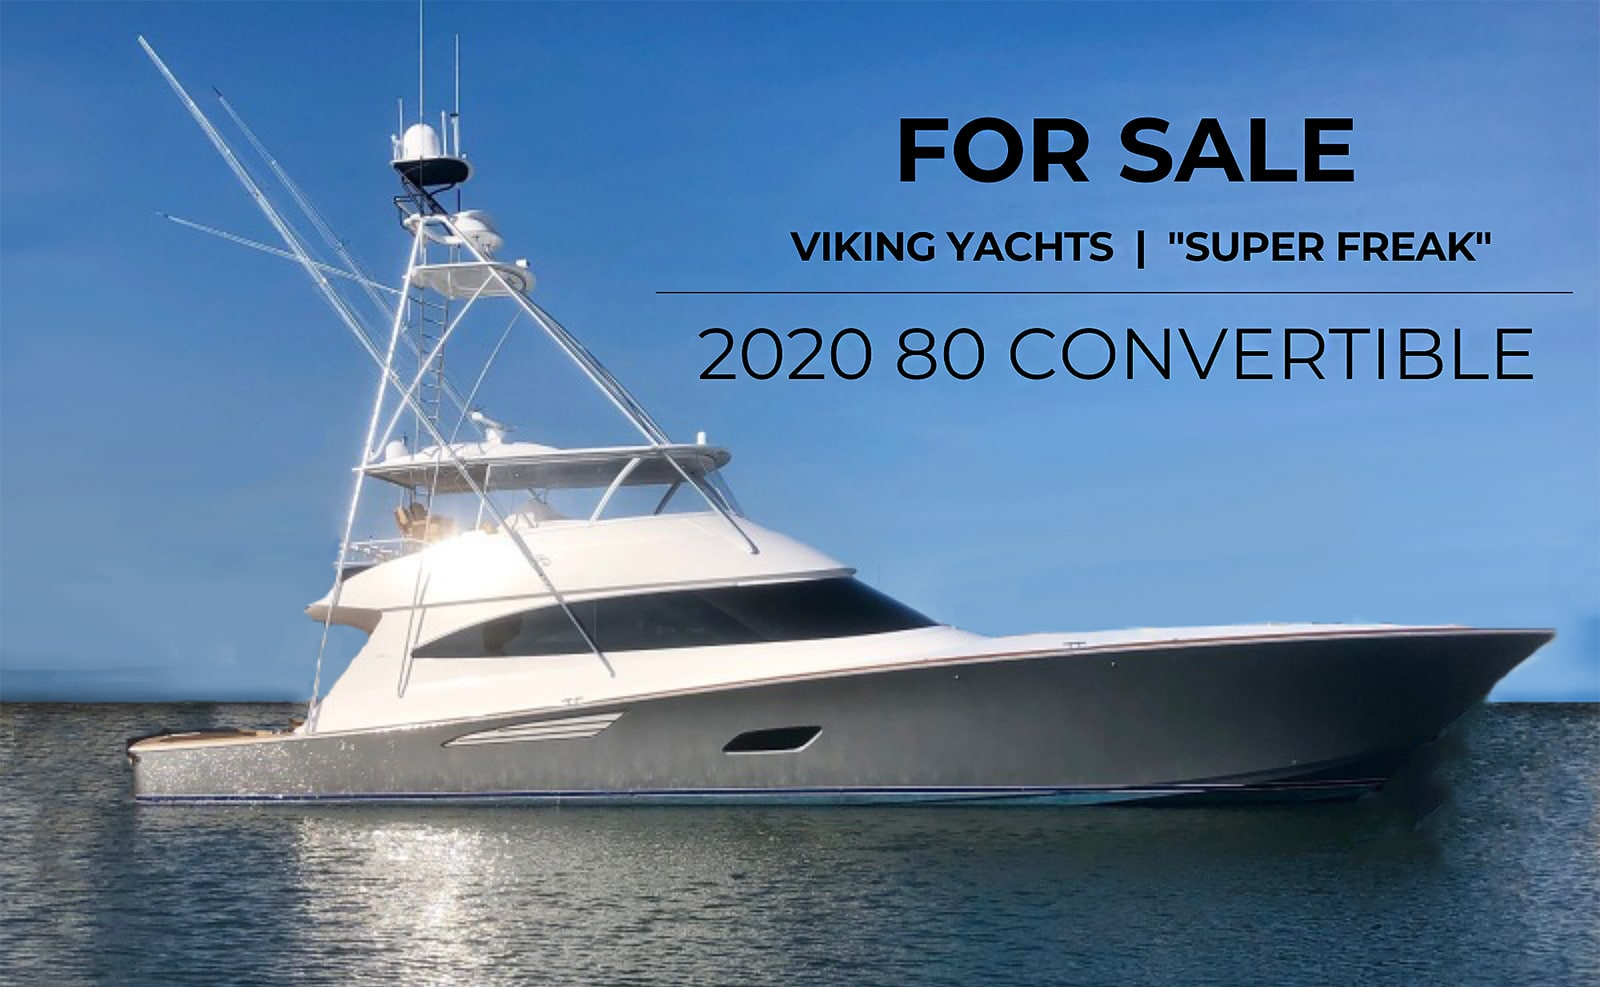 2020 80 Viking Yachts Convertible Super Freak